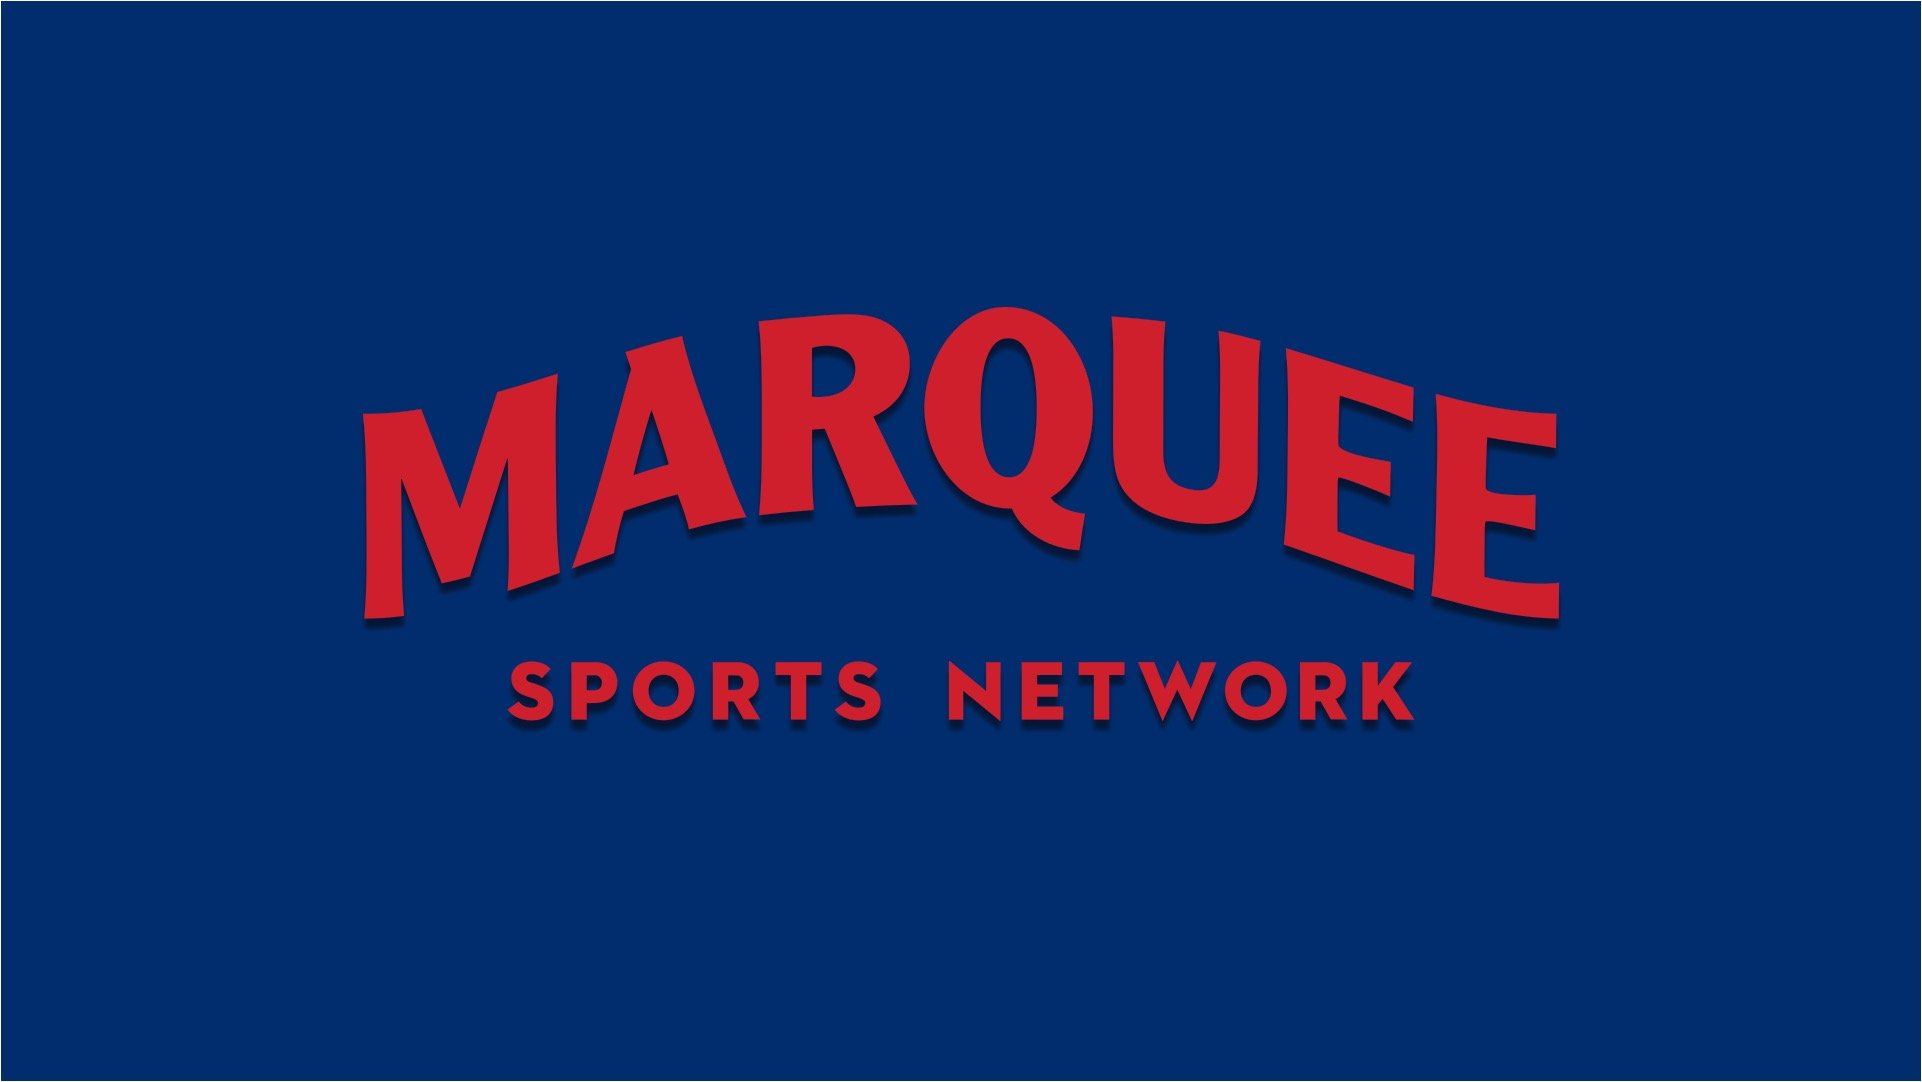 How to Stream Marquee Sports Network Without Cable